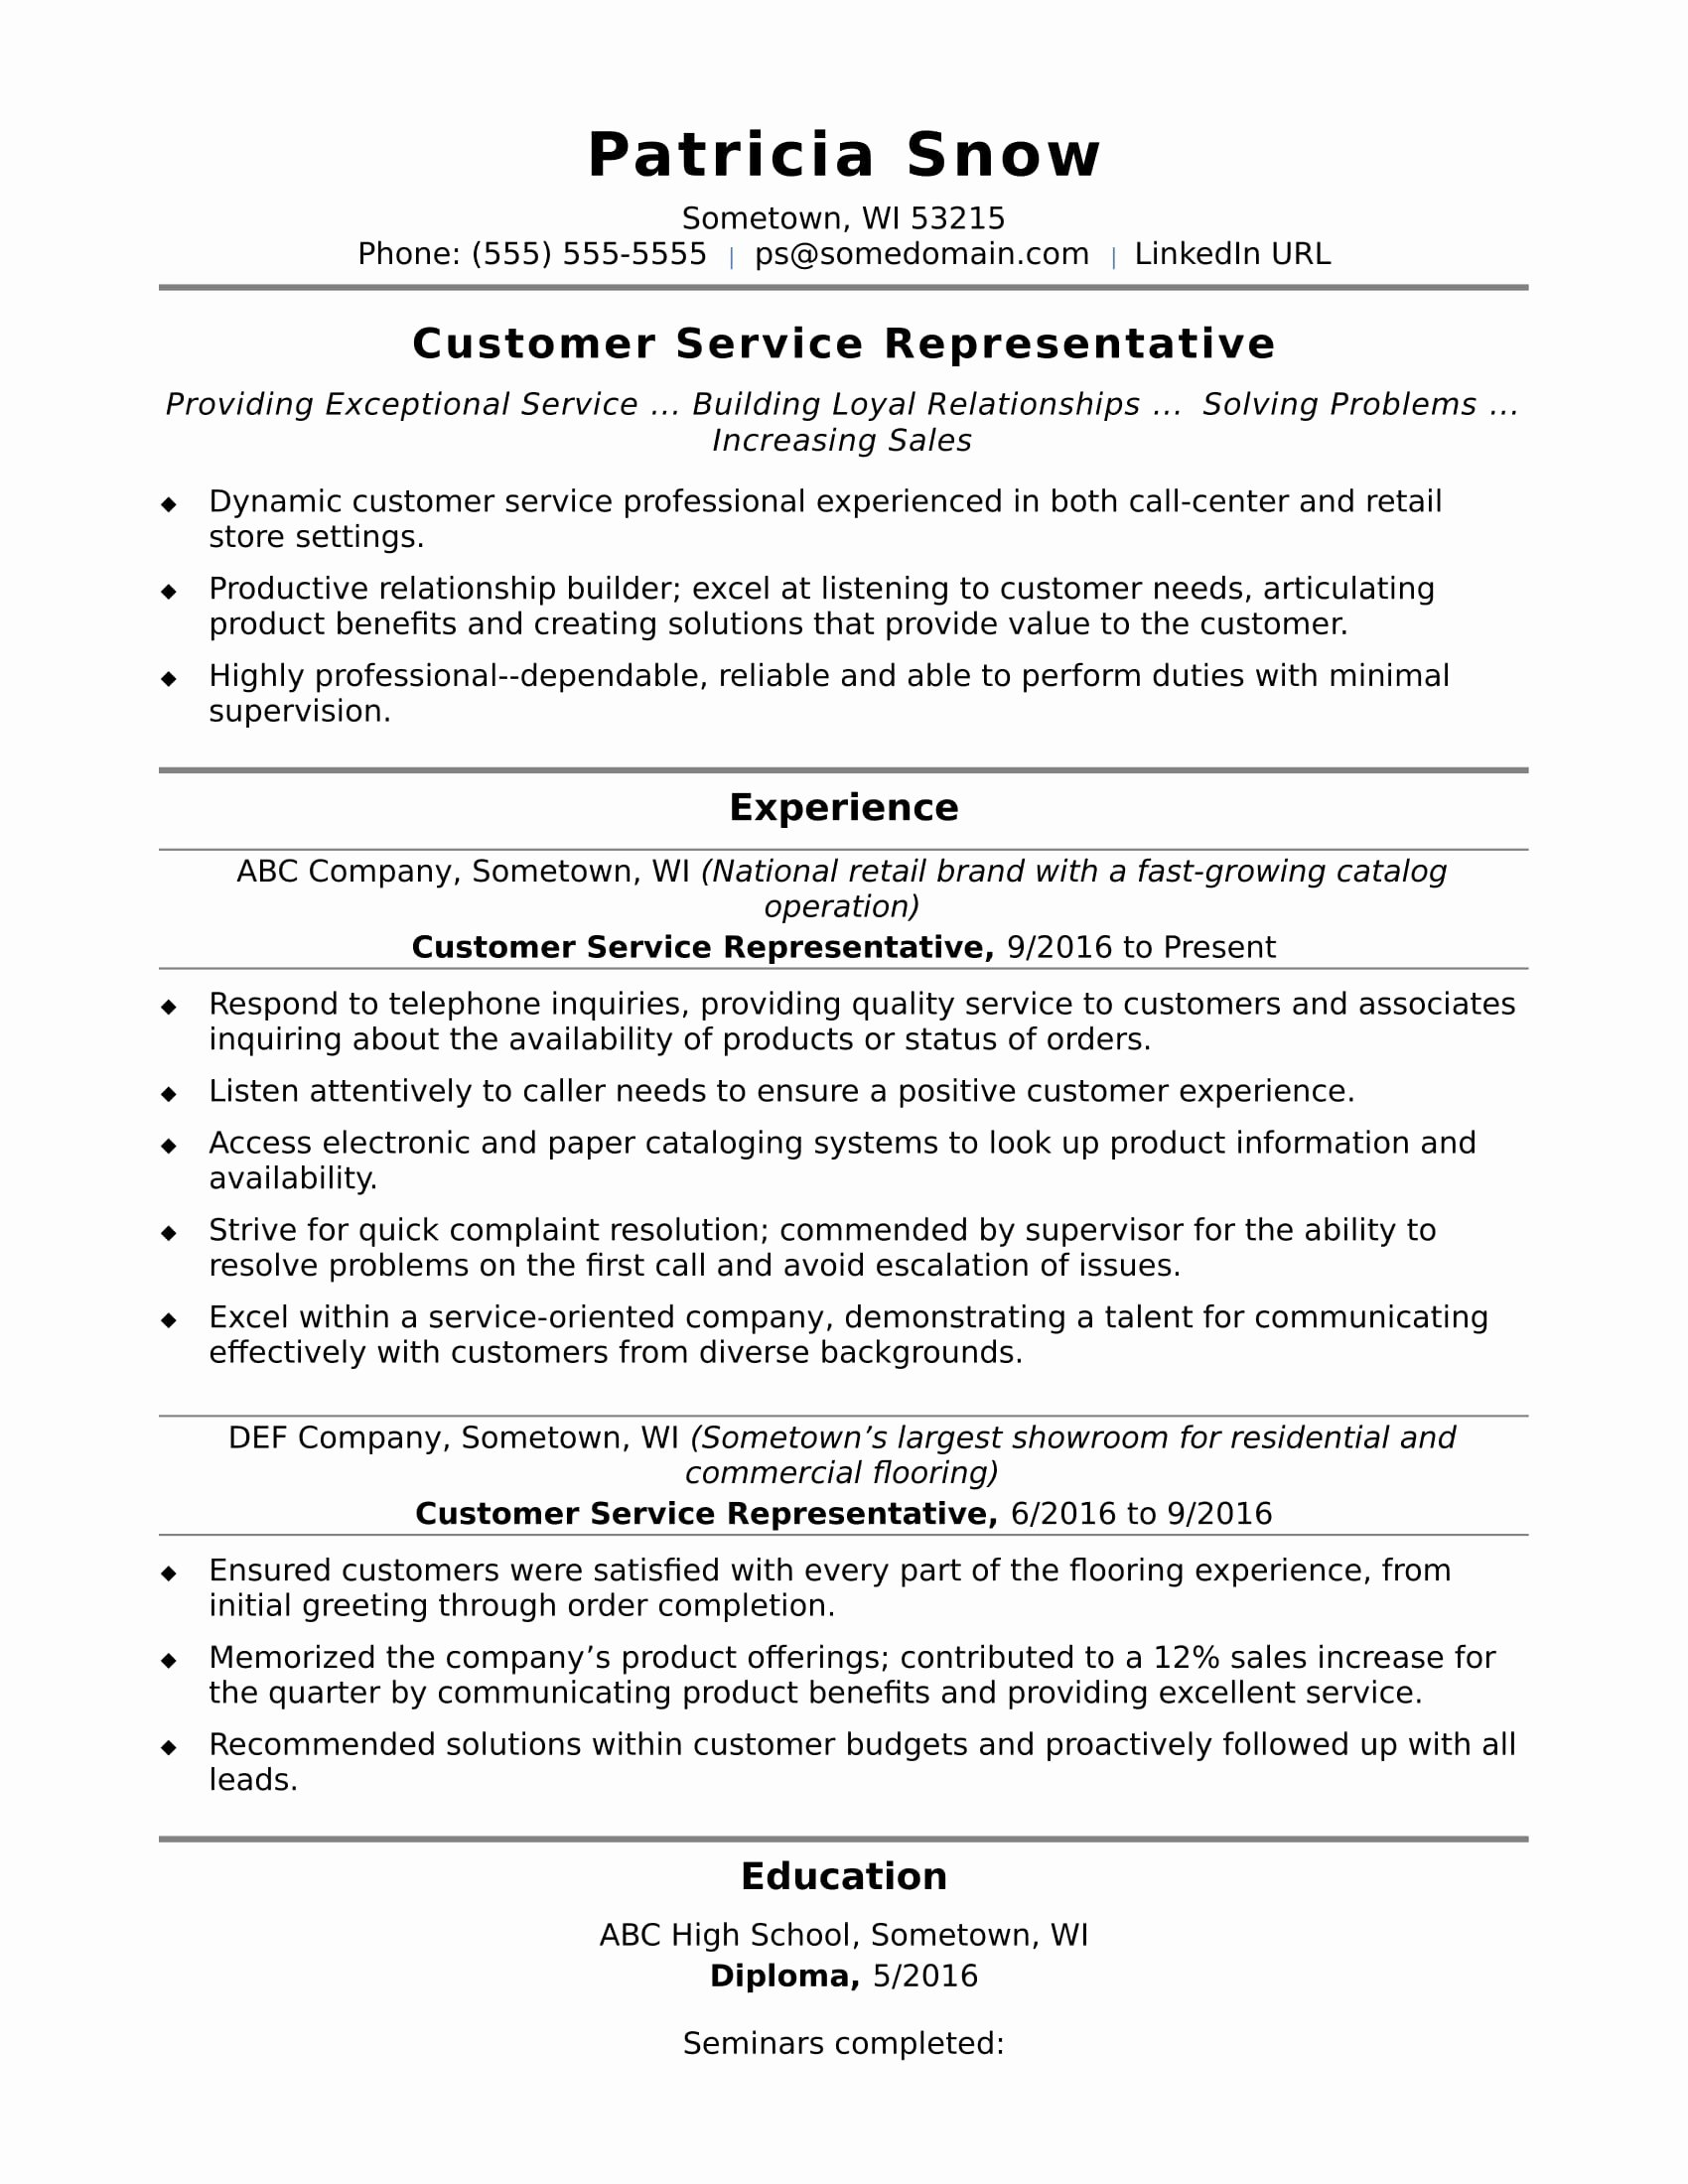 Sample Resume Skills For Customer Service Representative